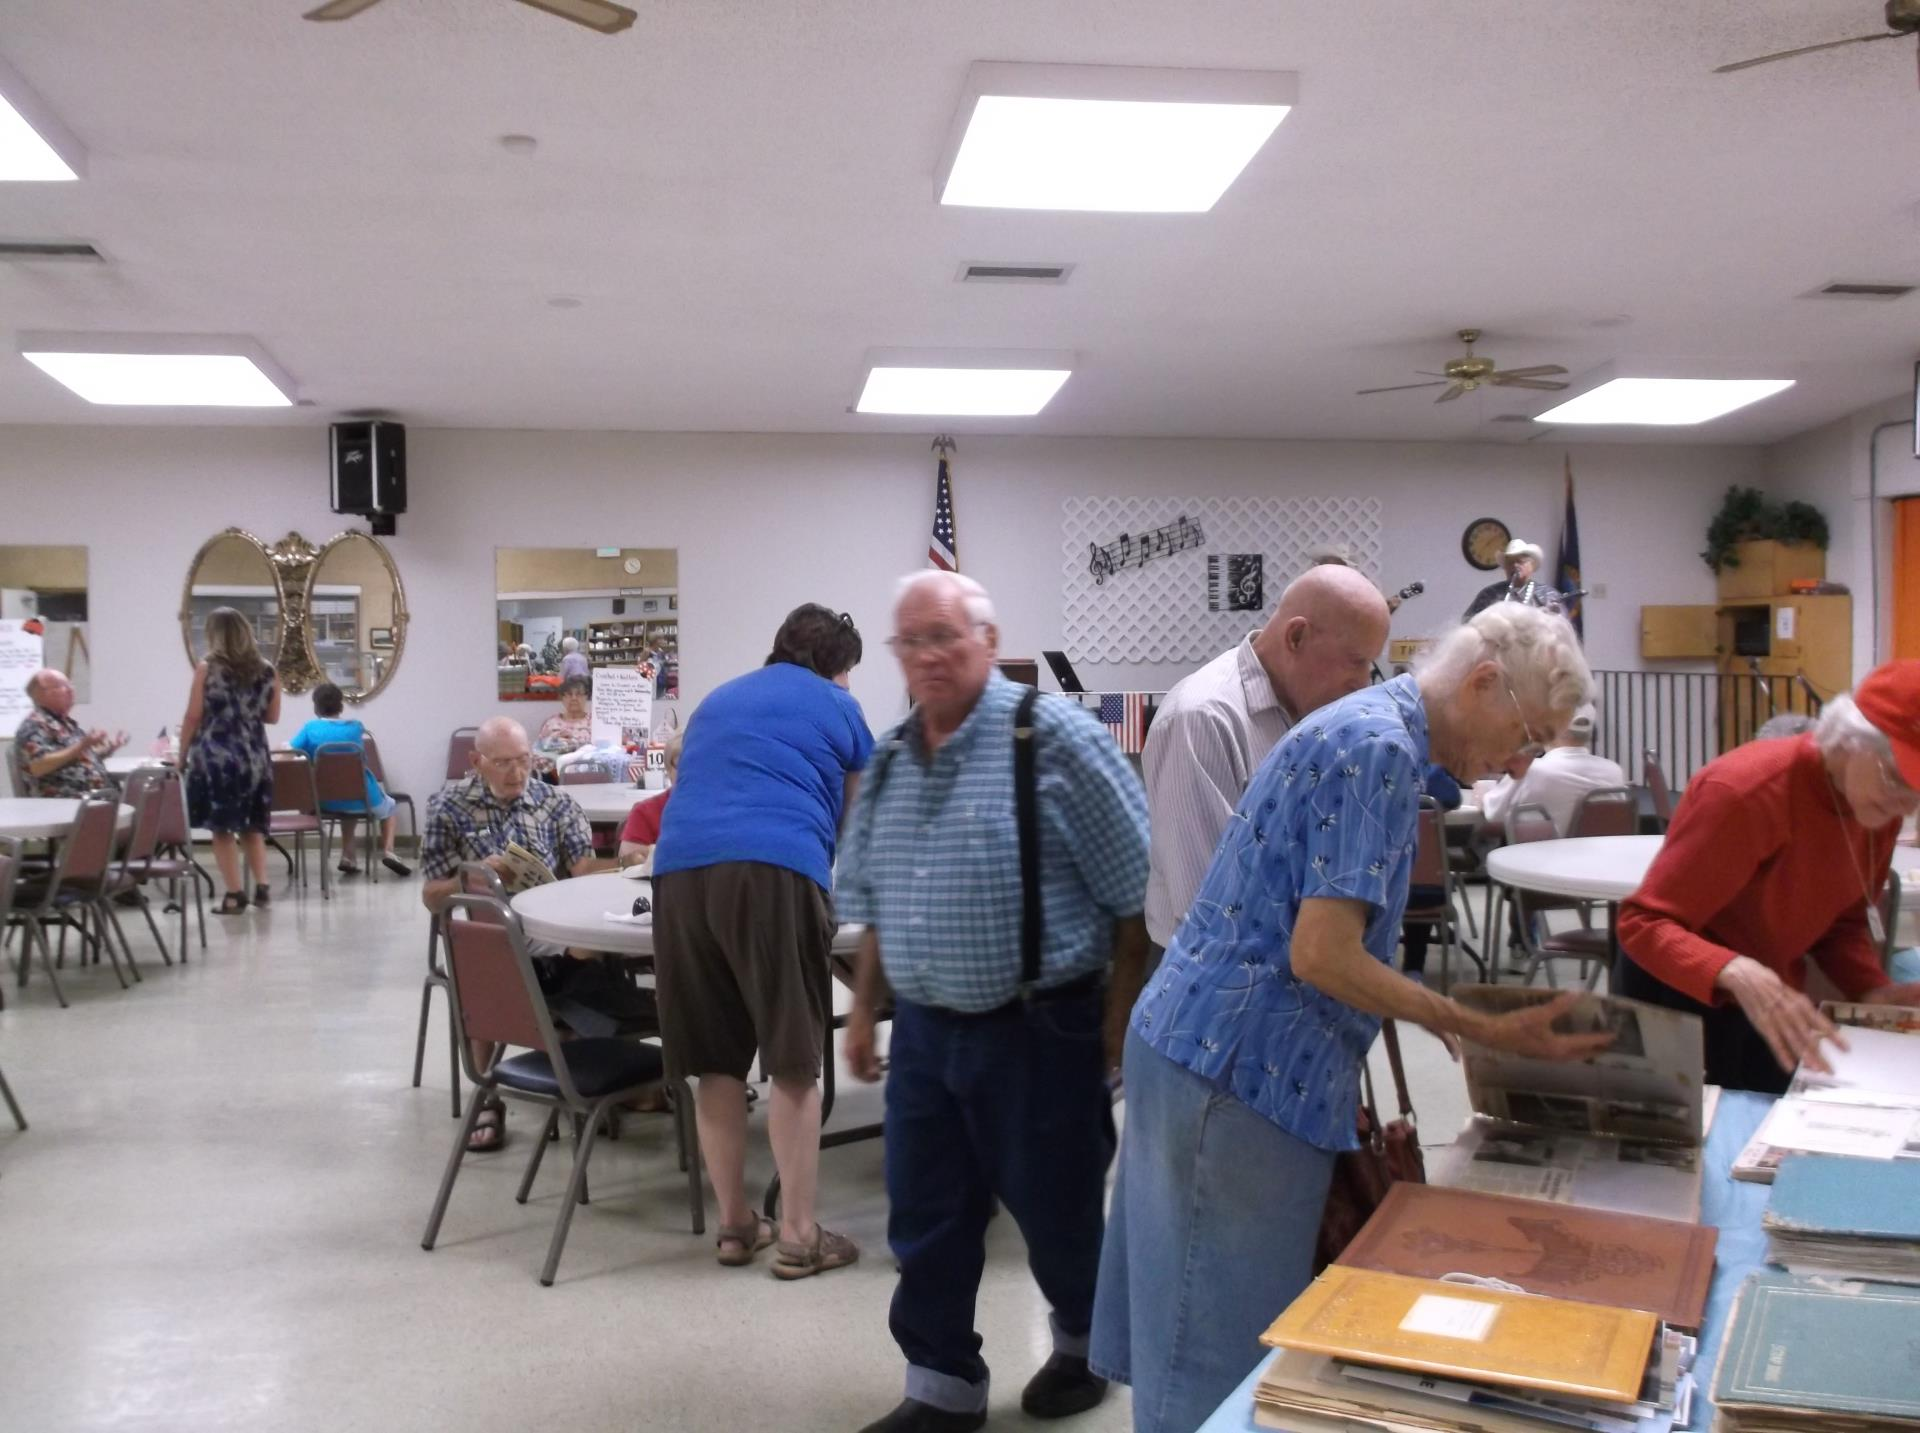 Midday at the Senior Center